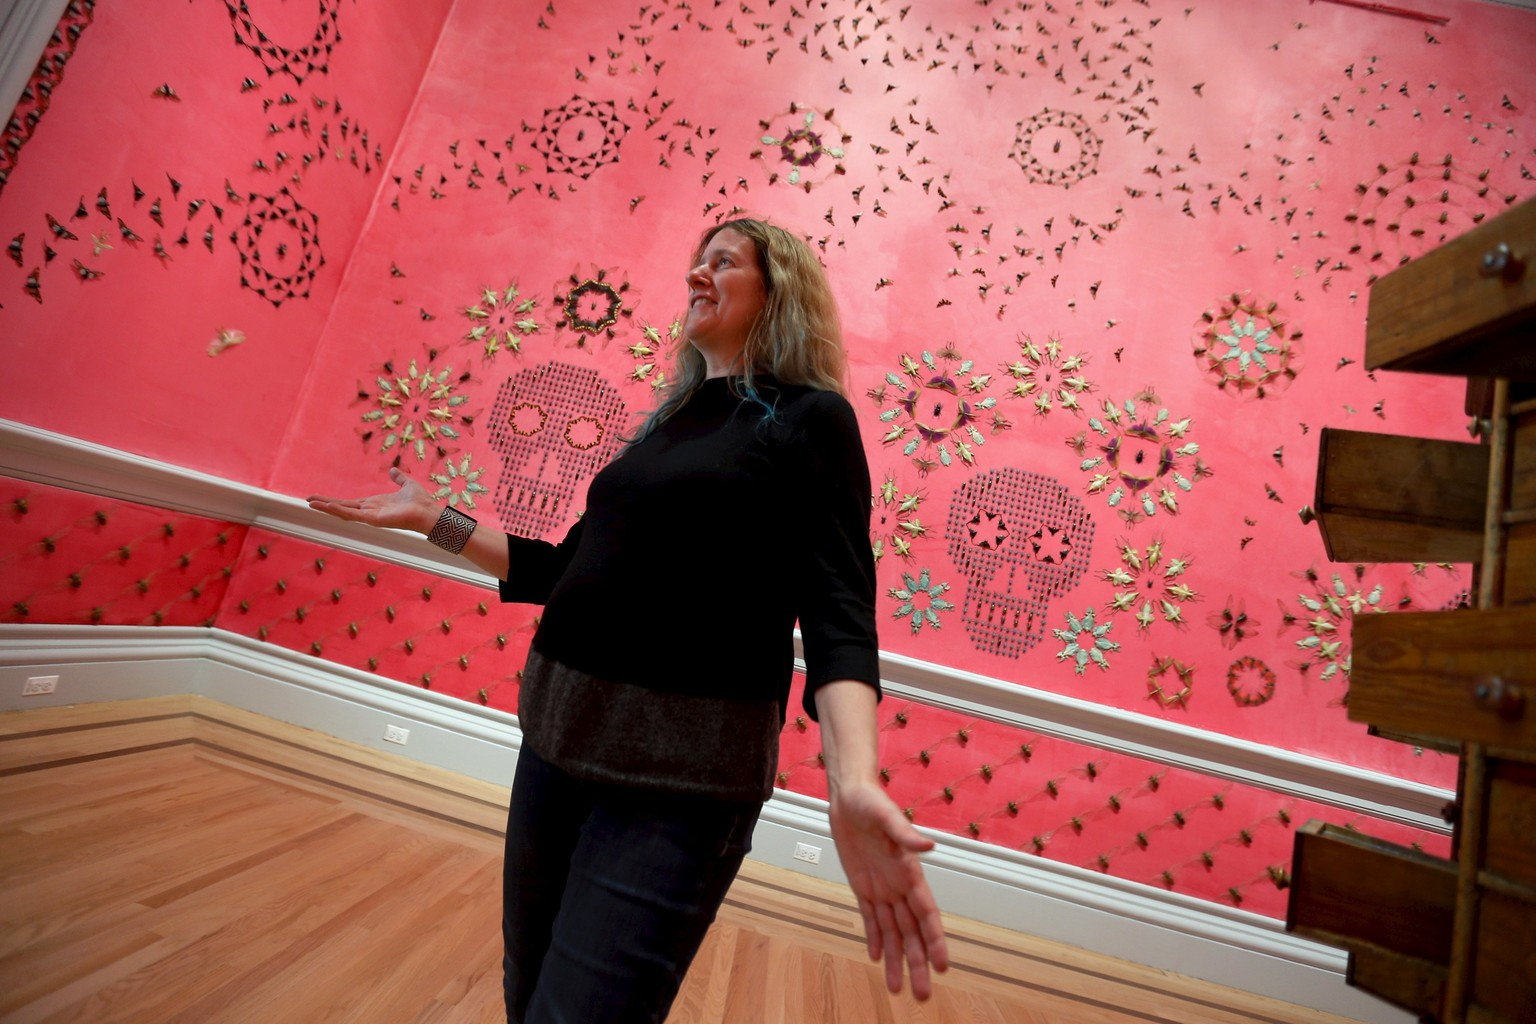 Jennifer Angus discusses her geometric wall covering created with specimens of insects, one of nine gallery-sized art installations to mark the reopening of the Smithsonian's Renwick Gallery in Washington November 11, 2015. The Renwick, which is the Smithsonian's museum dedicated to crafts and decorative arts, will reopen its doors Friday after an extensive two-year renovation. REUTERS/Jonathan Ernst FOR EDITORIAL USE ONLY. NO RESALES. NO ARCHIVE.